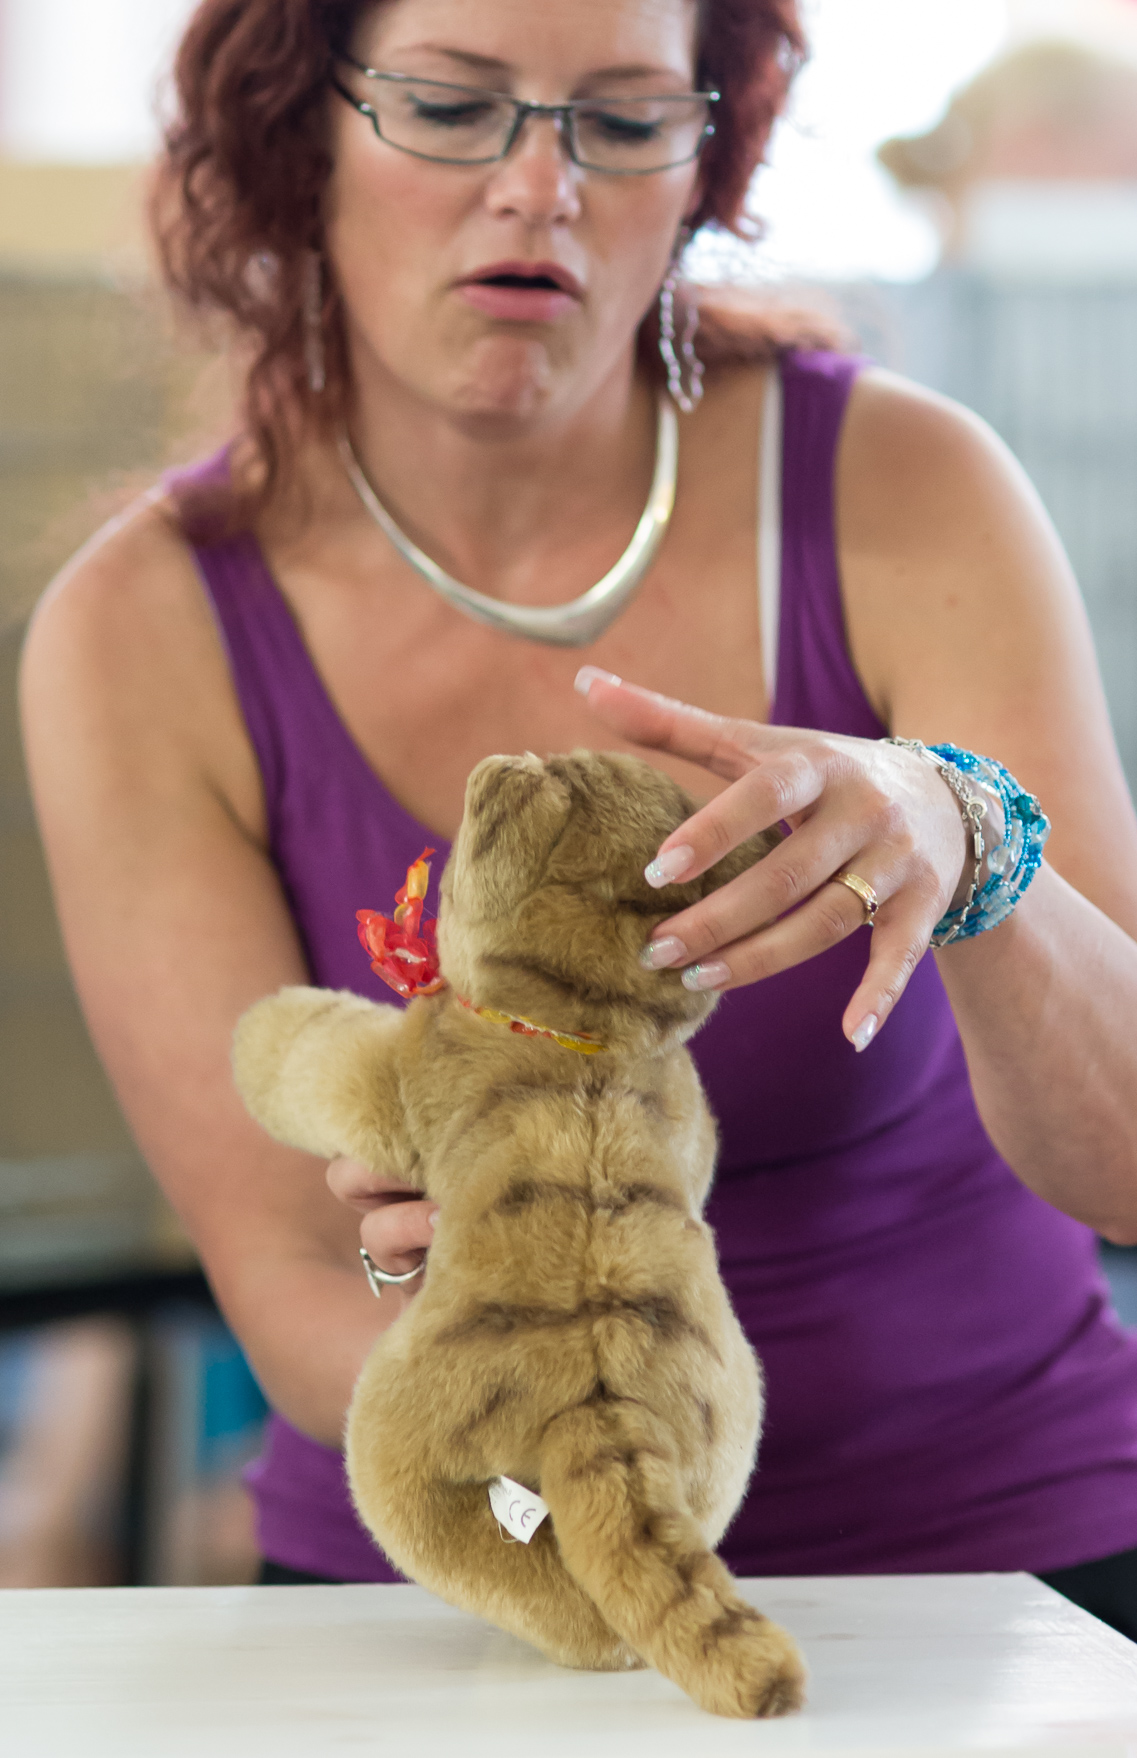 the toy cat contest, photo 223095, 2014-07-12